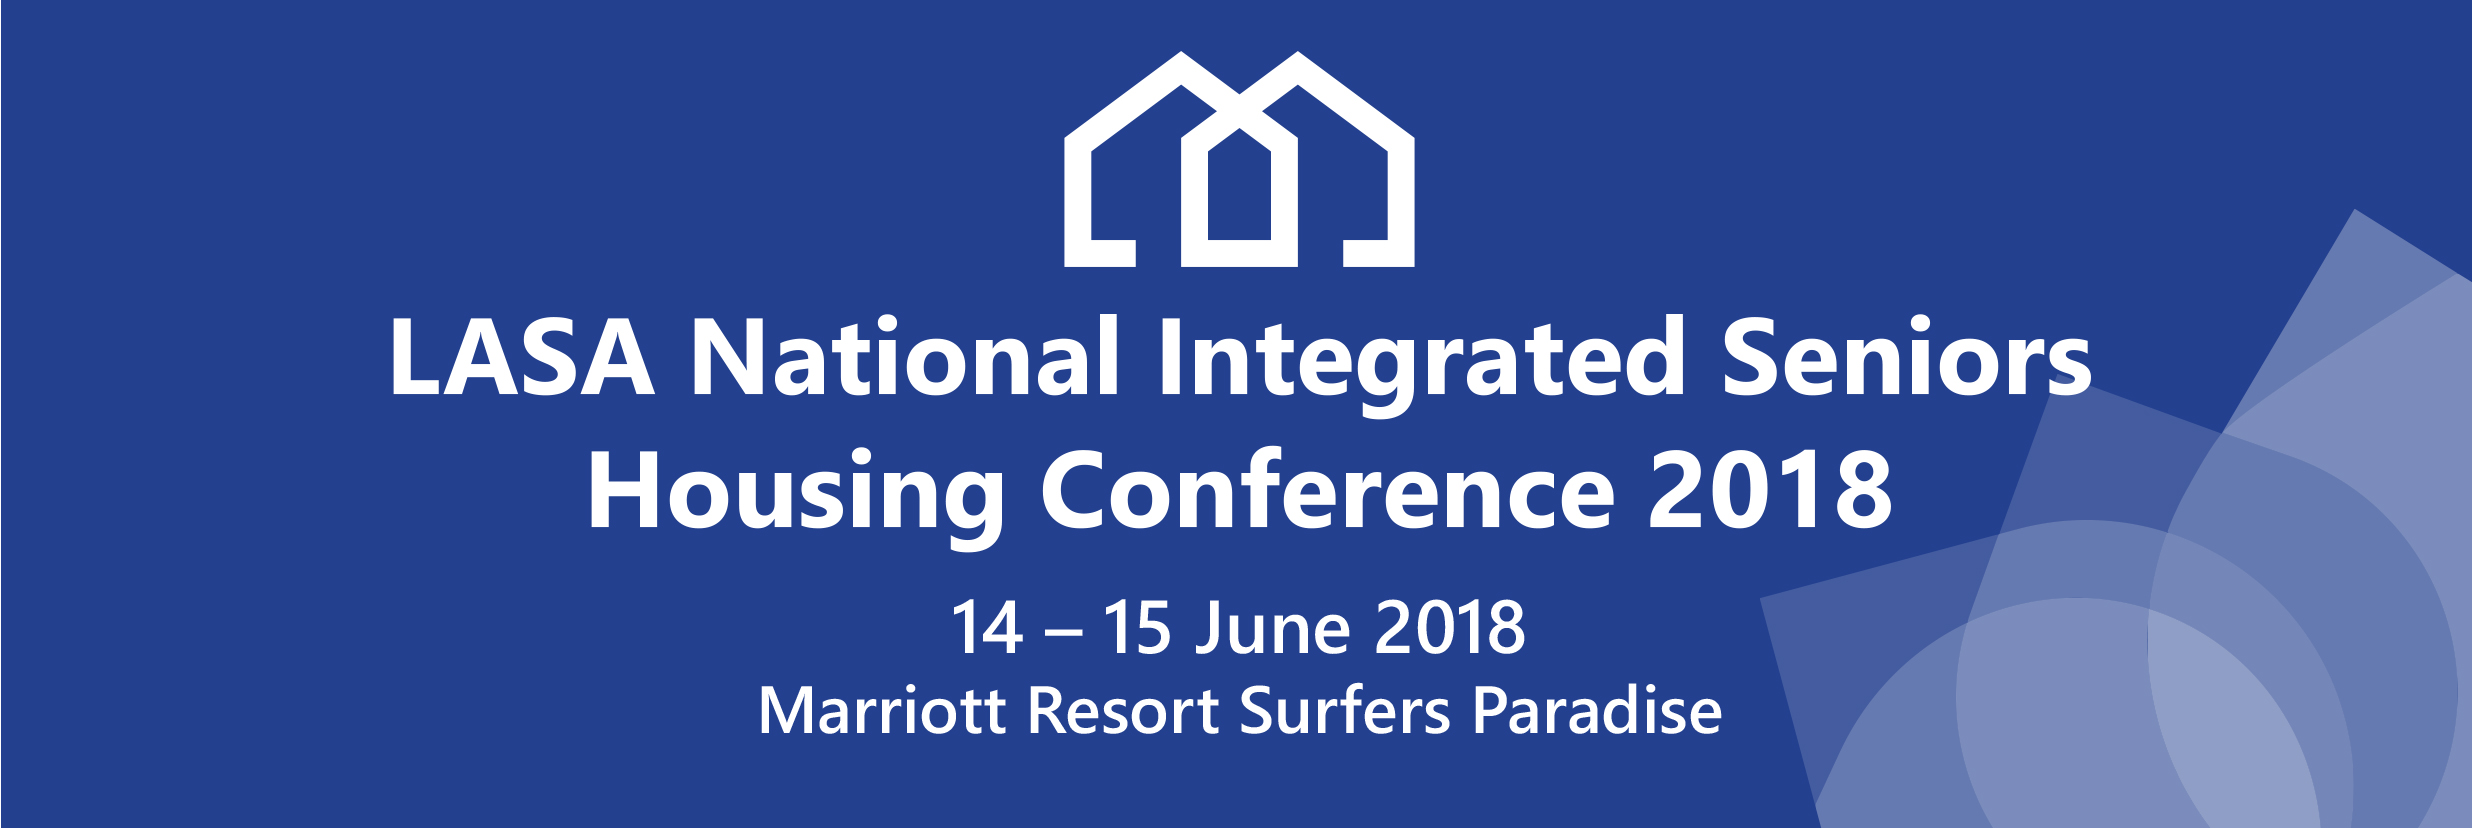 LASA National Integrated Seniors Housing Conference 2018